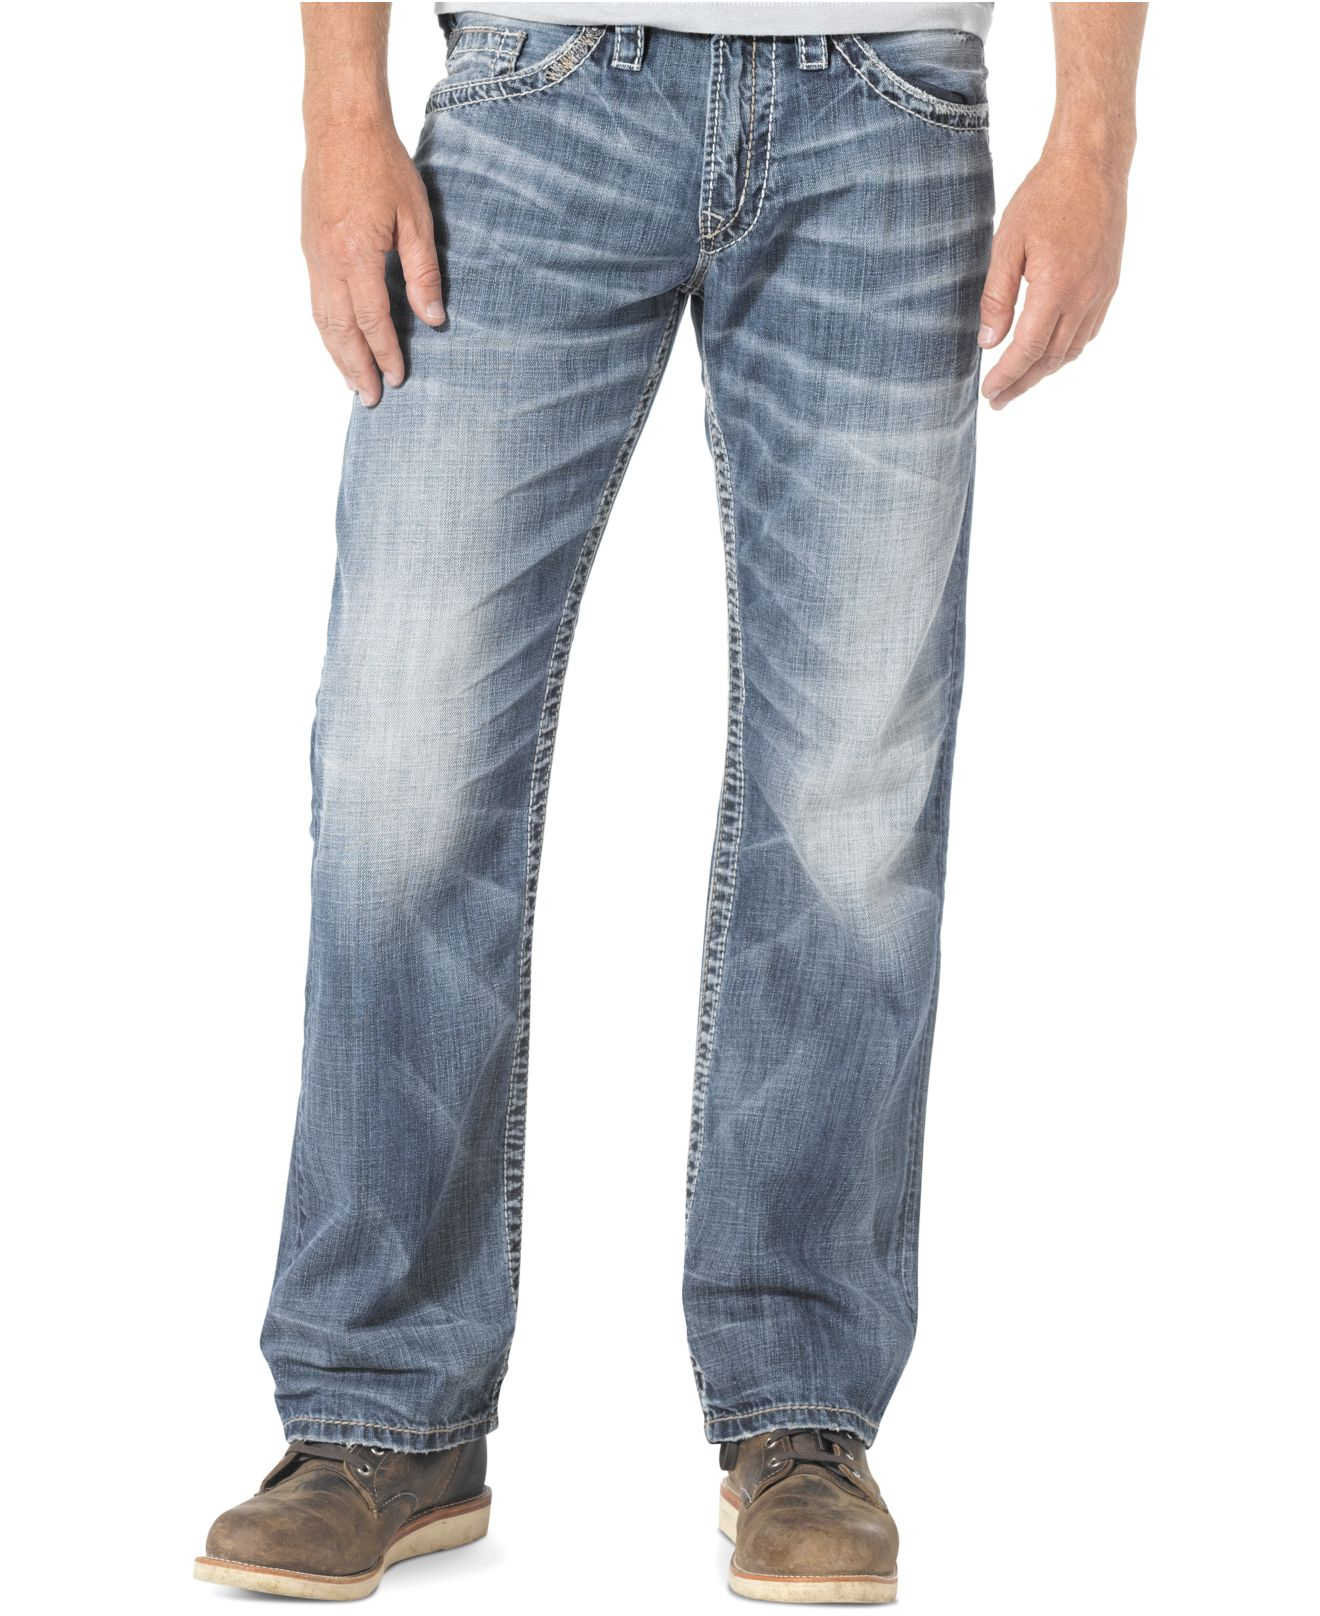 Men's silver jeans zac – Global fashion jeans models